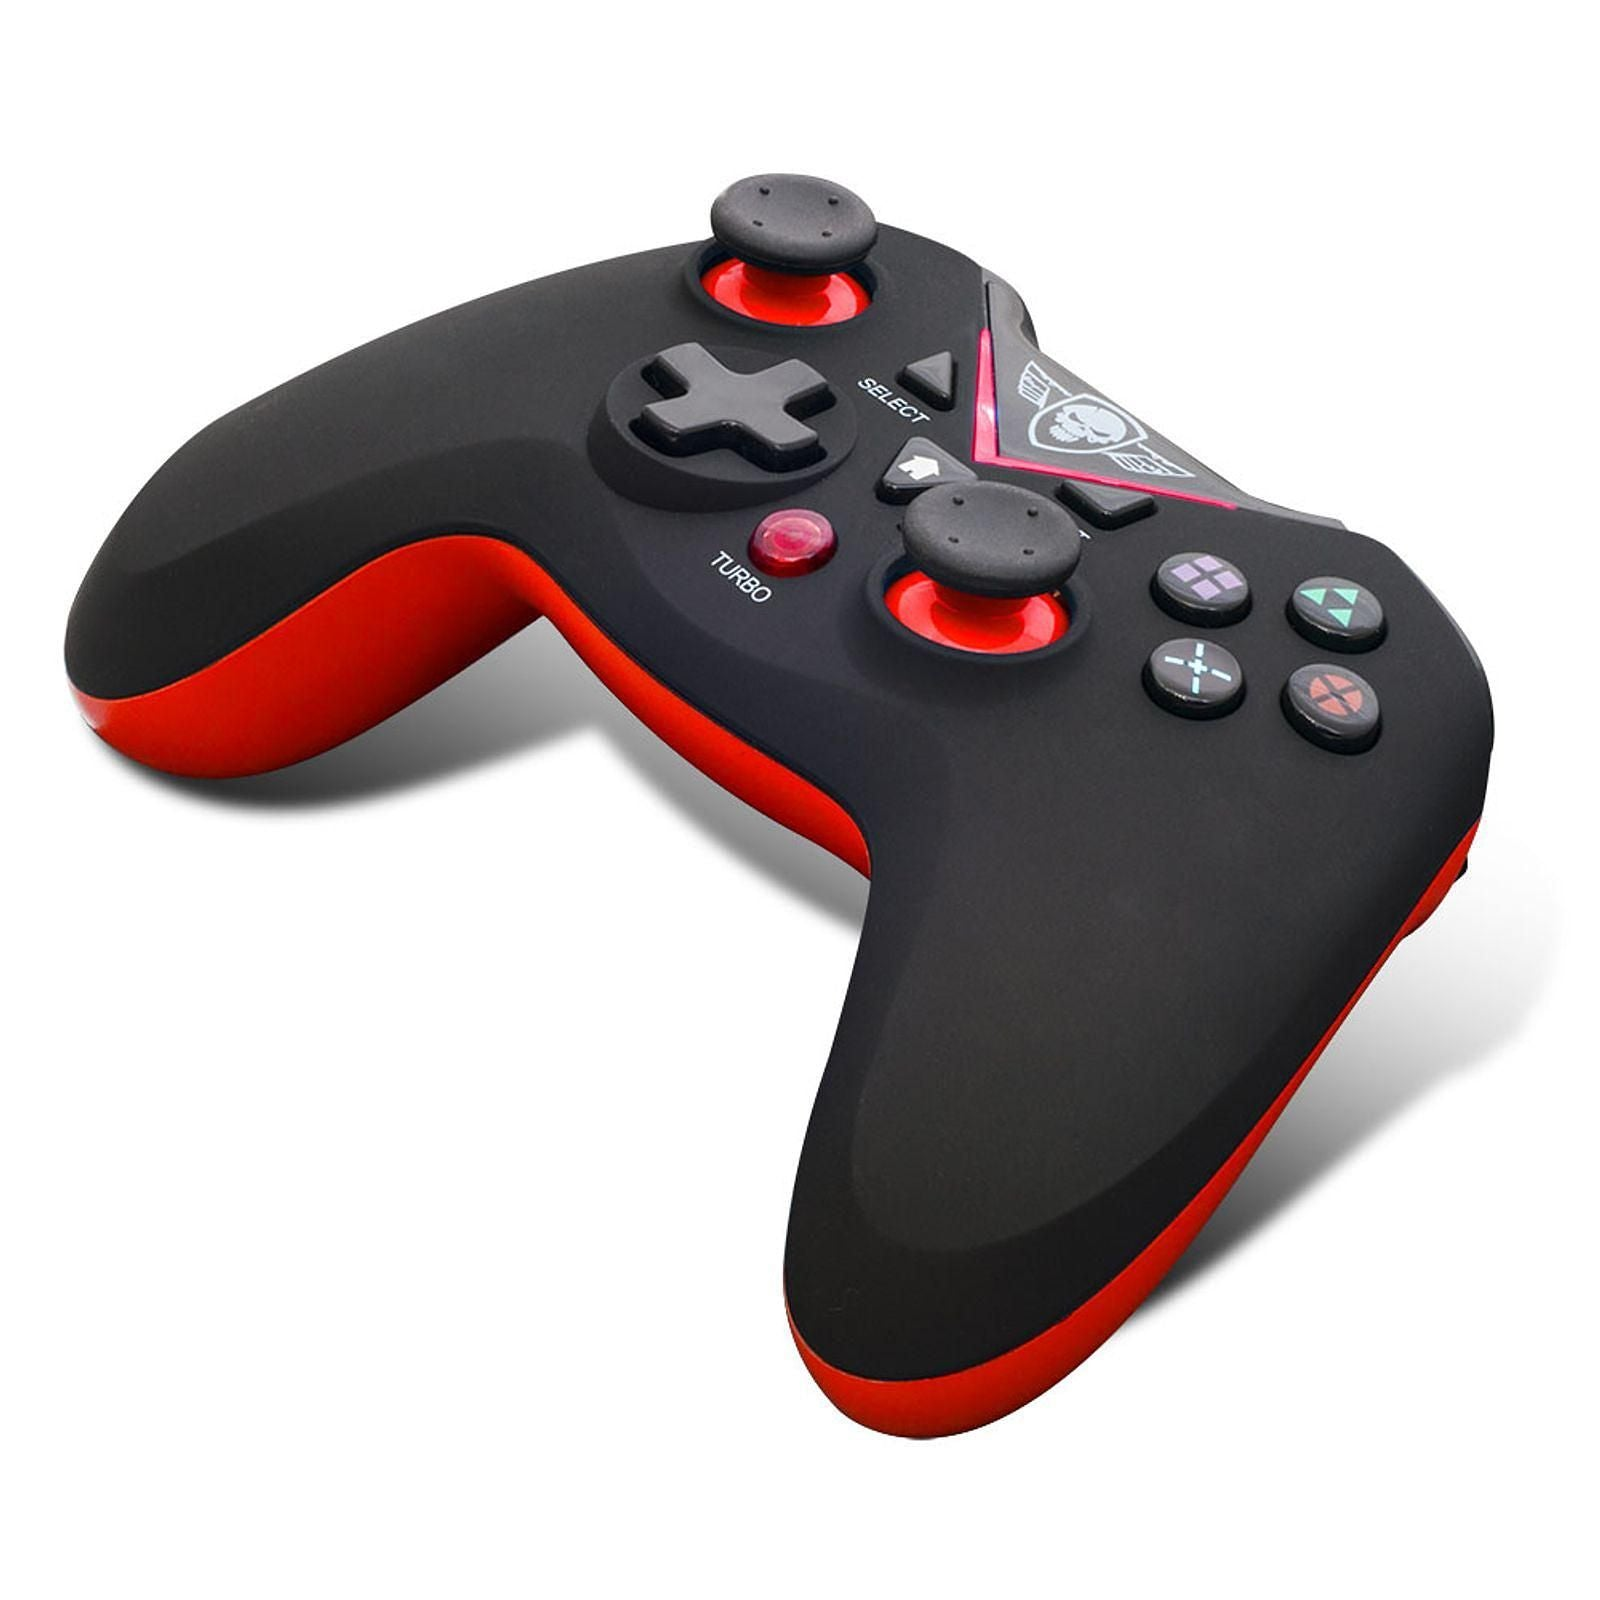 Spirit of Gamer XGP Wireless Gamepad - Manette sans fil pour PC /PlayStation 3 -  Manettes PC